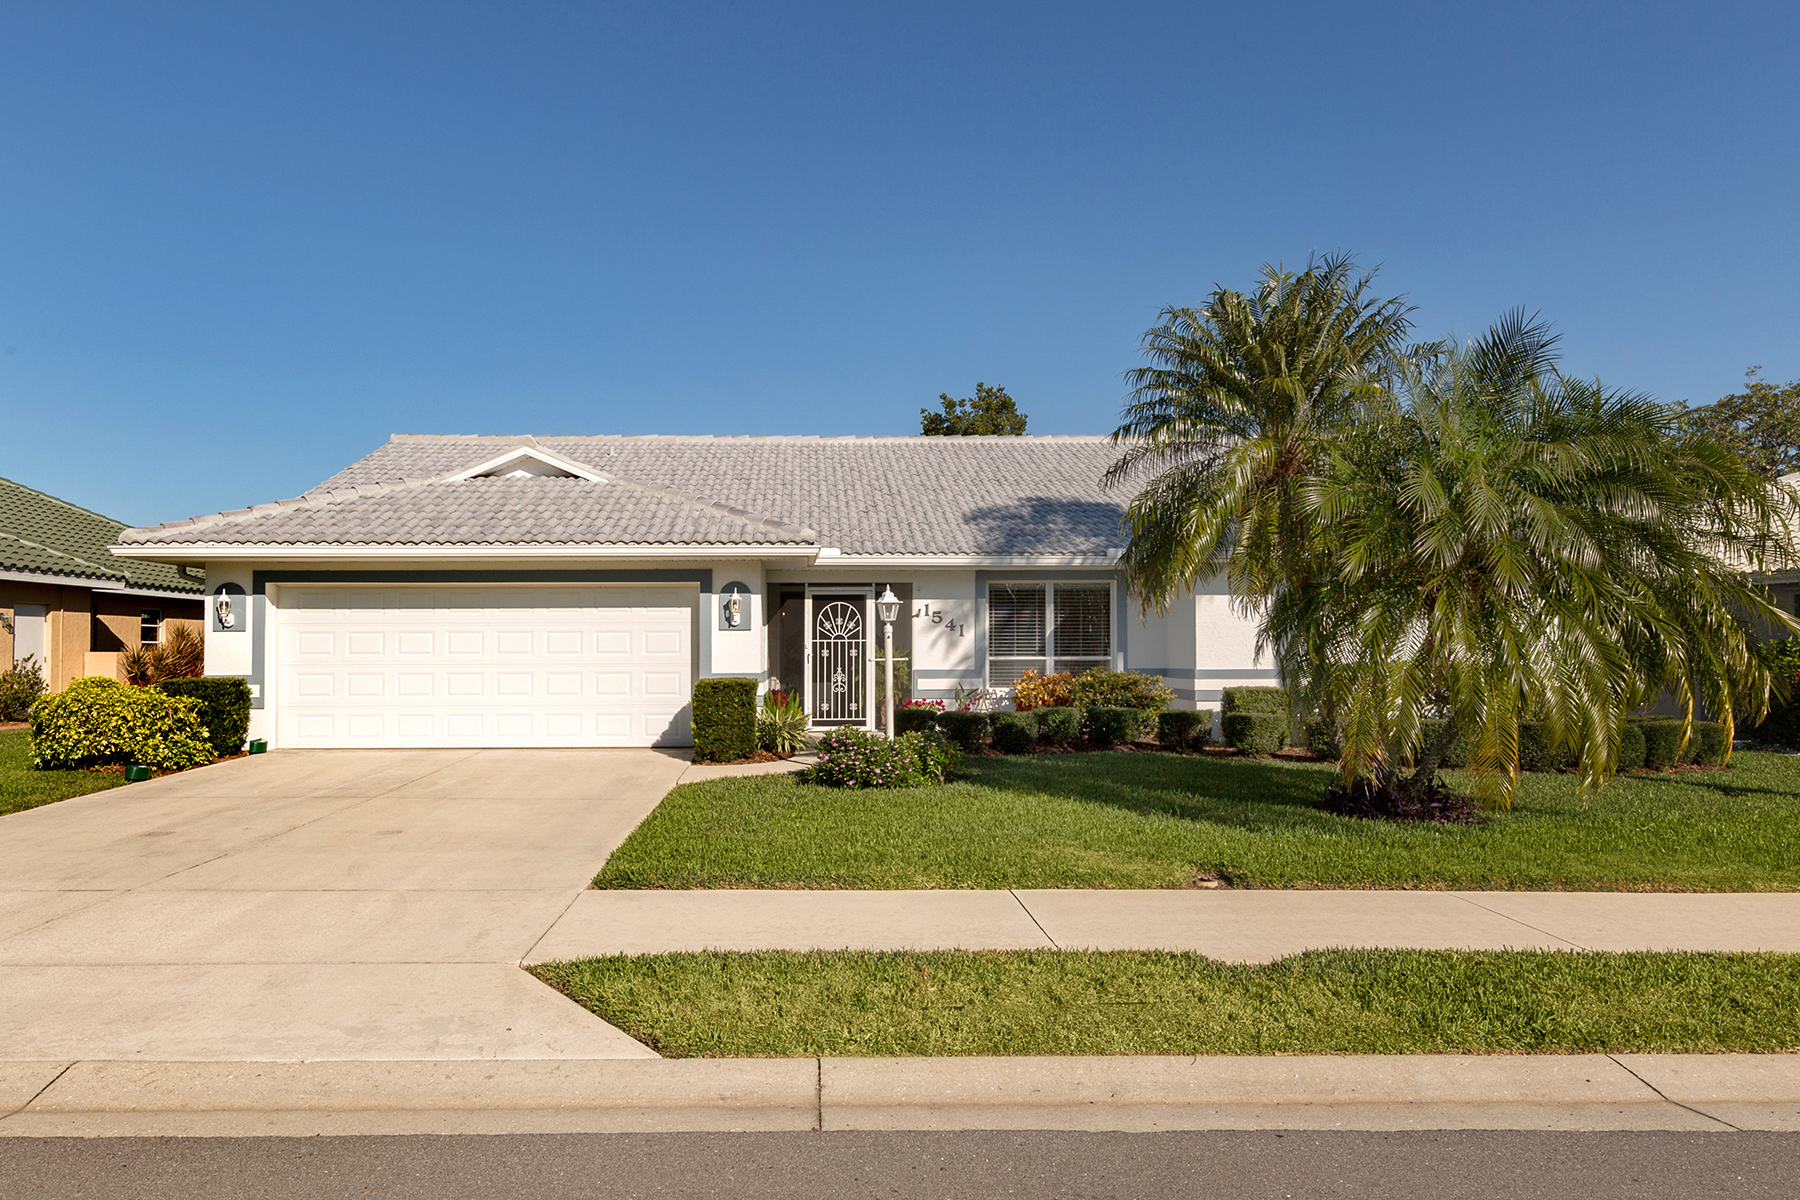 Single Family Home for Sale at WATERFORD 1541 Waterford Dr, Venice, Florida, 34292 United States